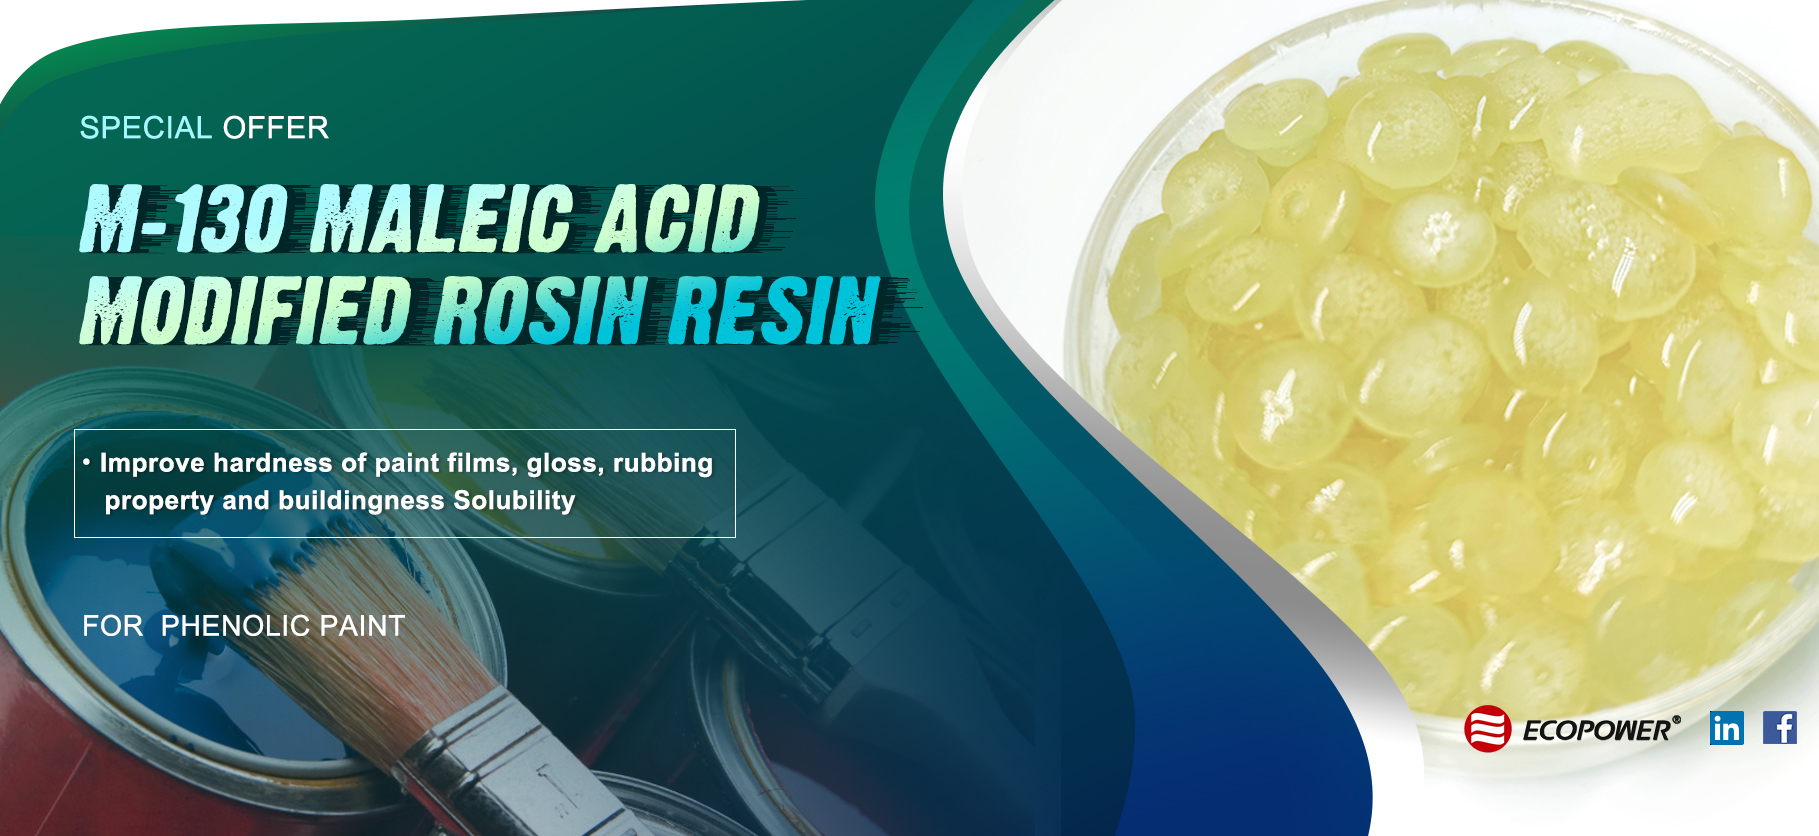 ECOPOWER M-130 Maleic Acid Resin